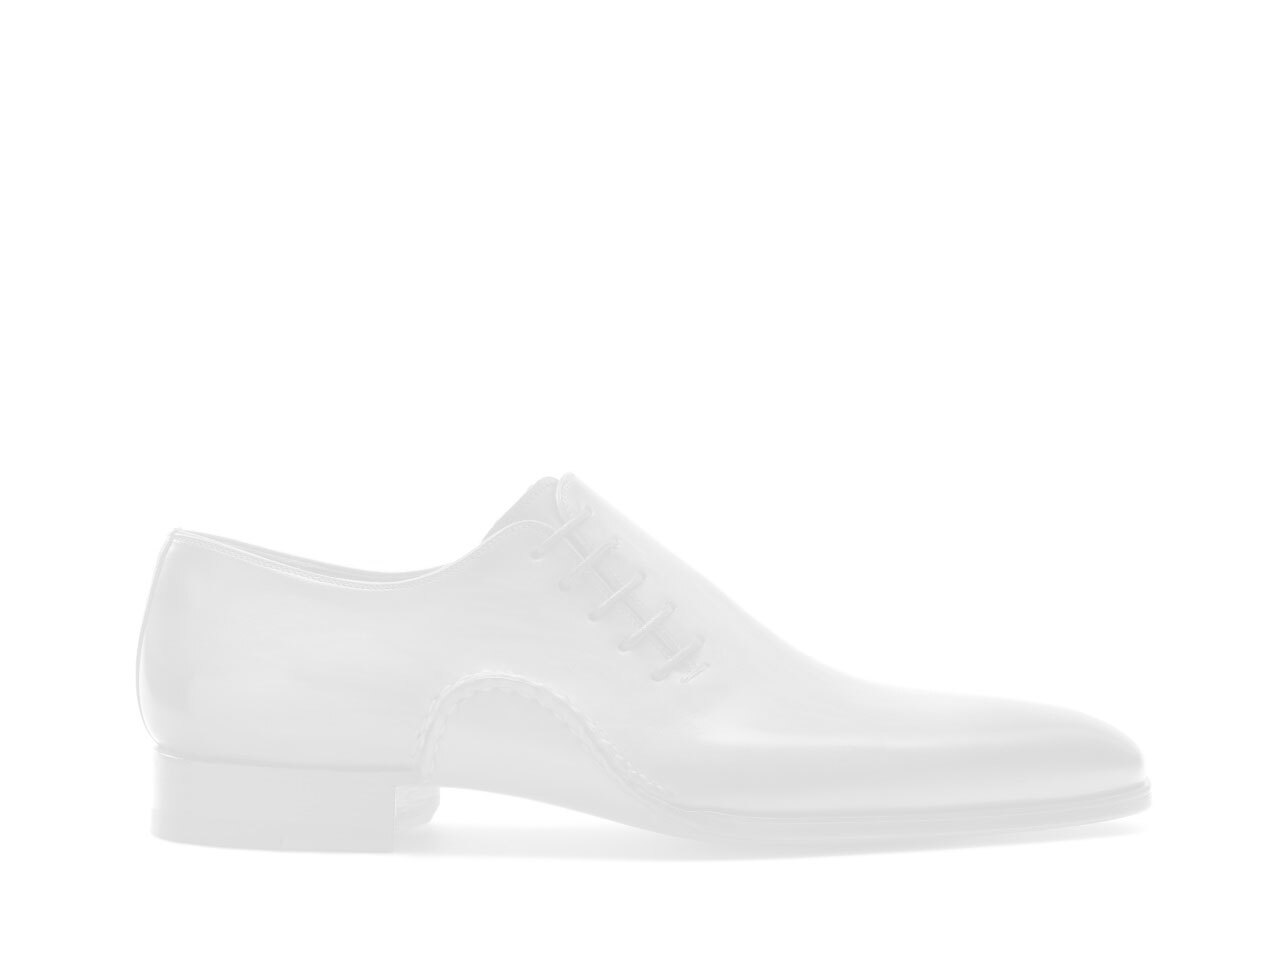 Side view of the Magnanni Spero White Men's Sneakers